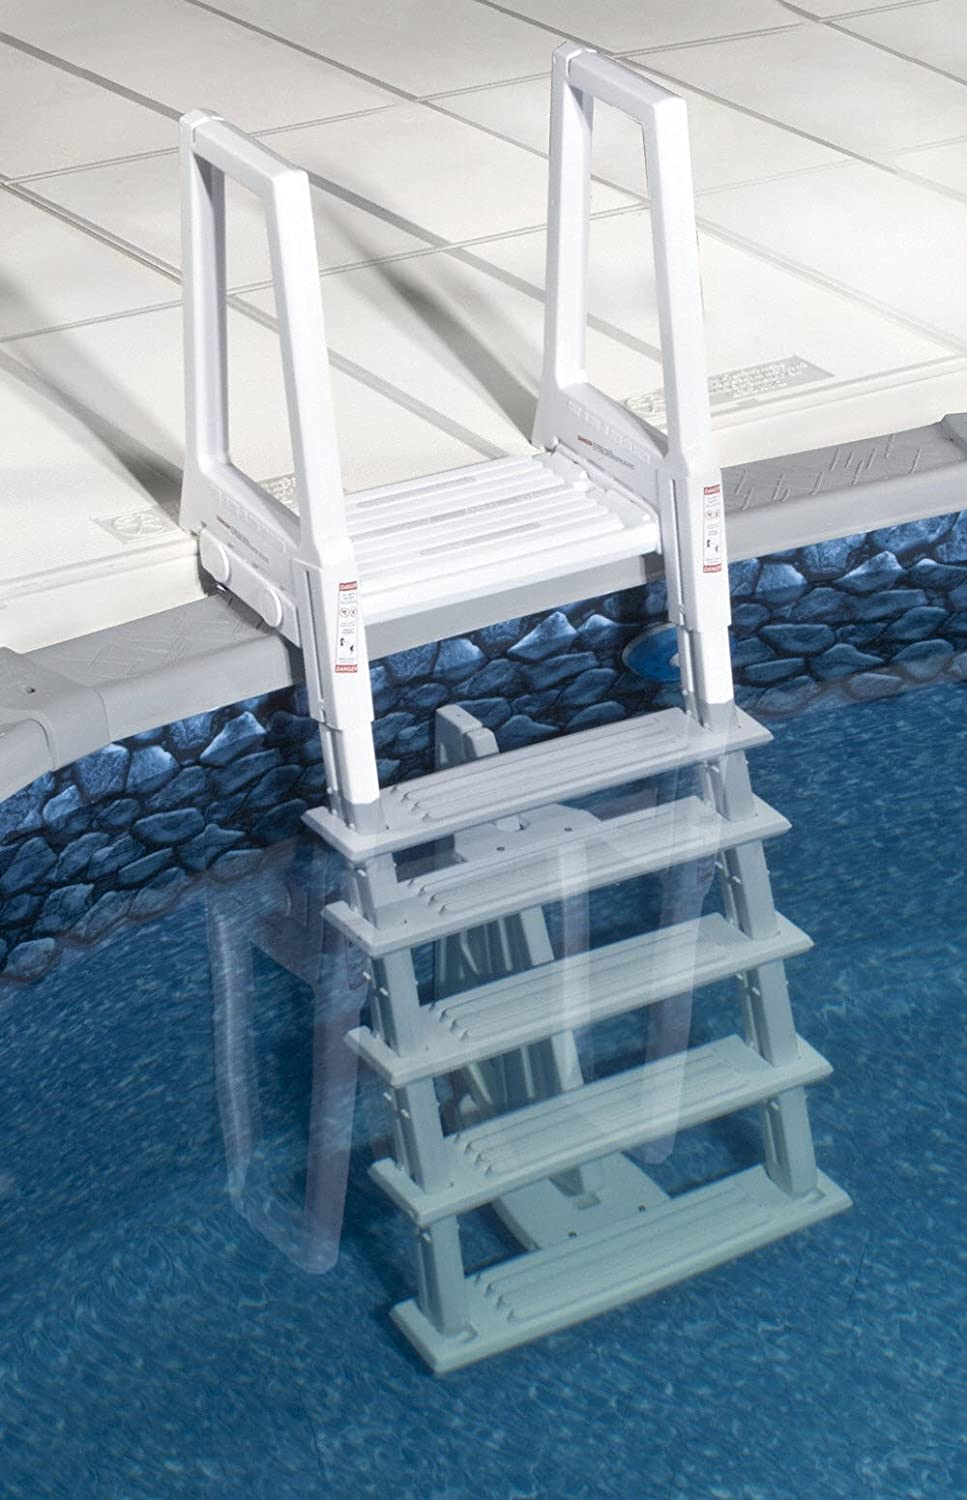 amazoncom 46 56 inch confer above ground swimming pool in pool ladder deluxe pool ladder patio lawn garden